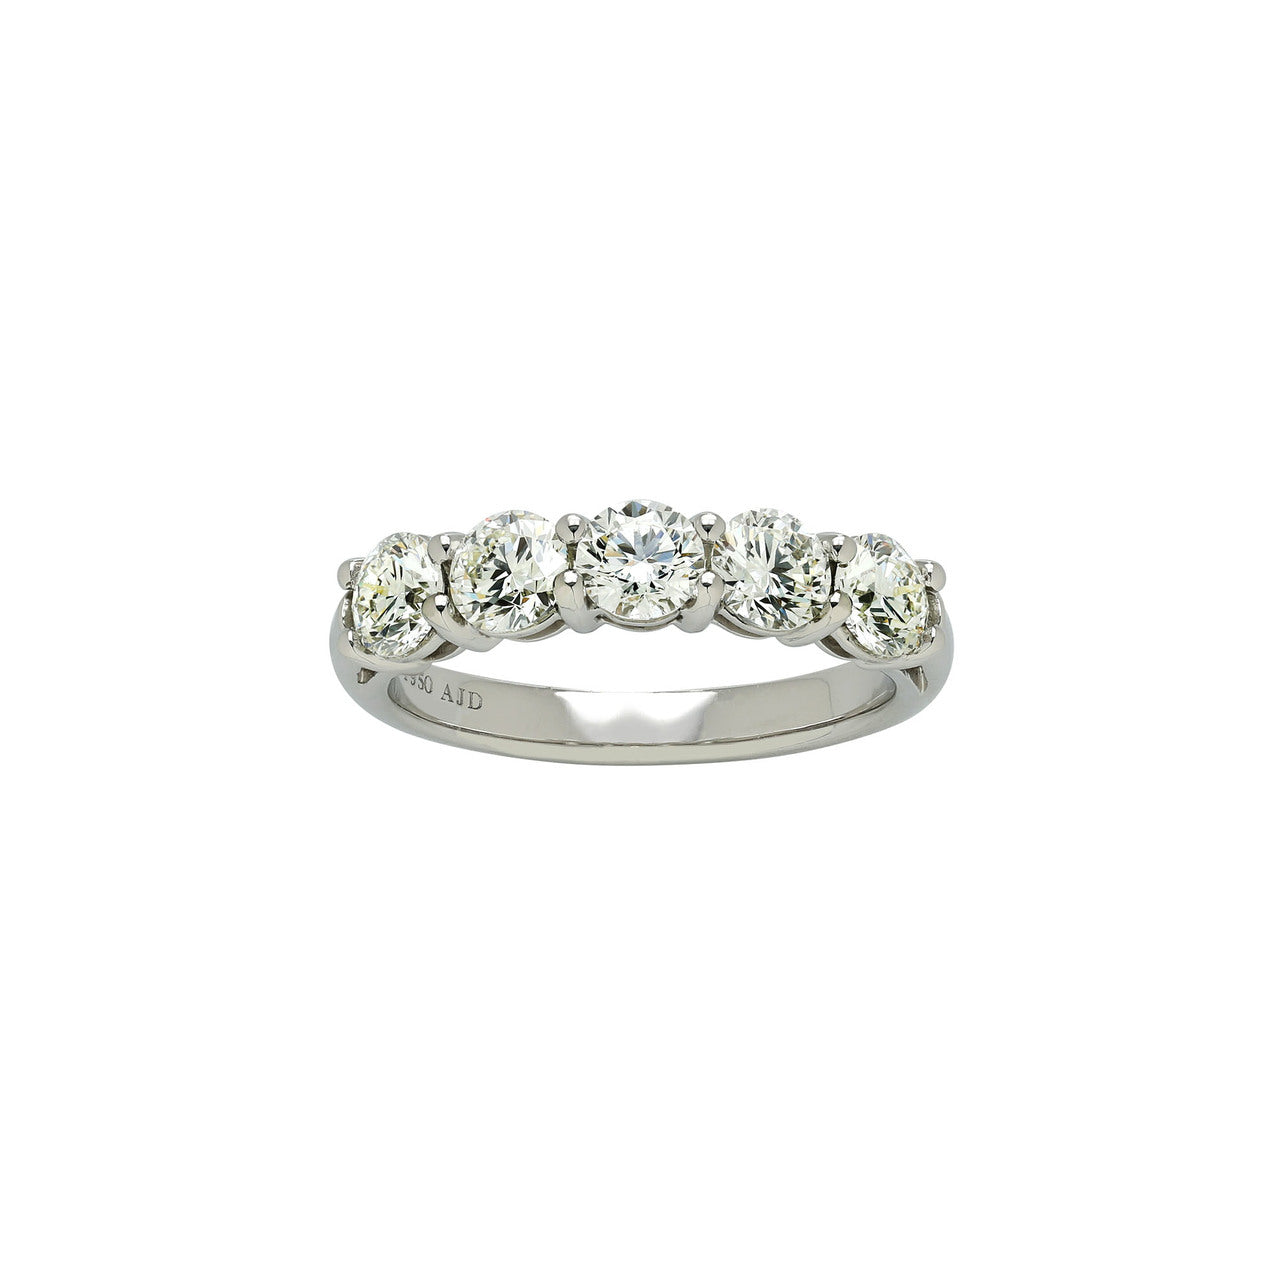 Fink's Platinum 5 Round Diamond Prong Set Band